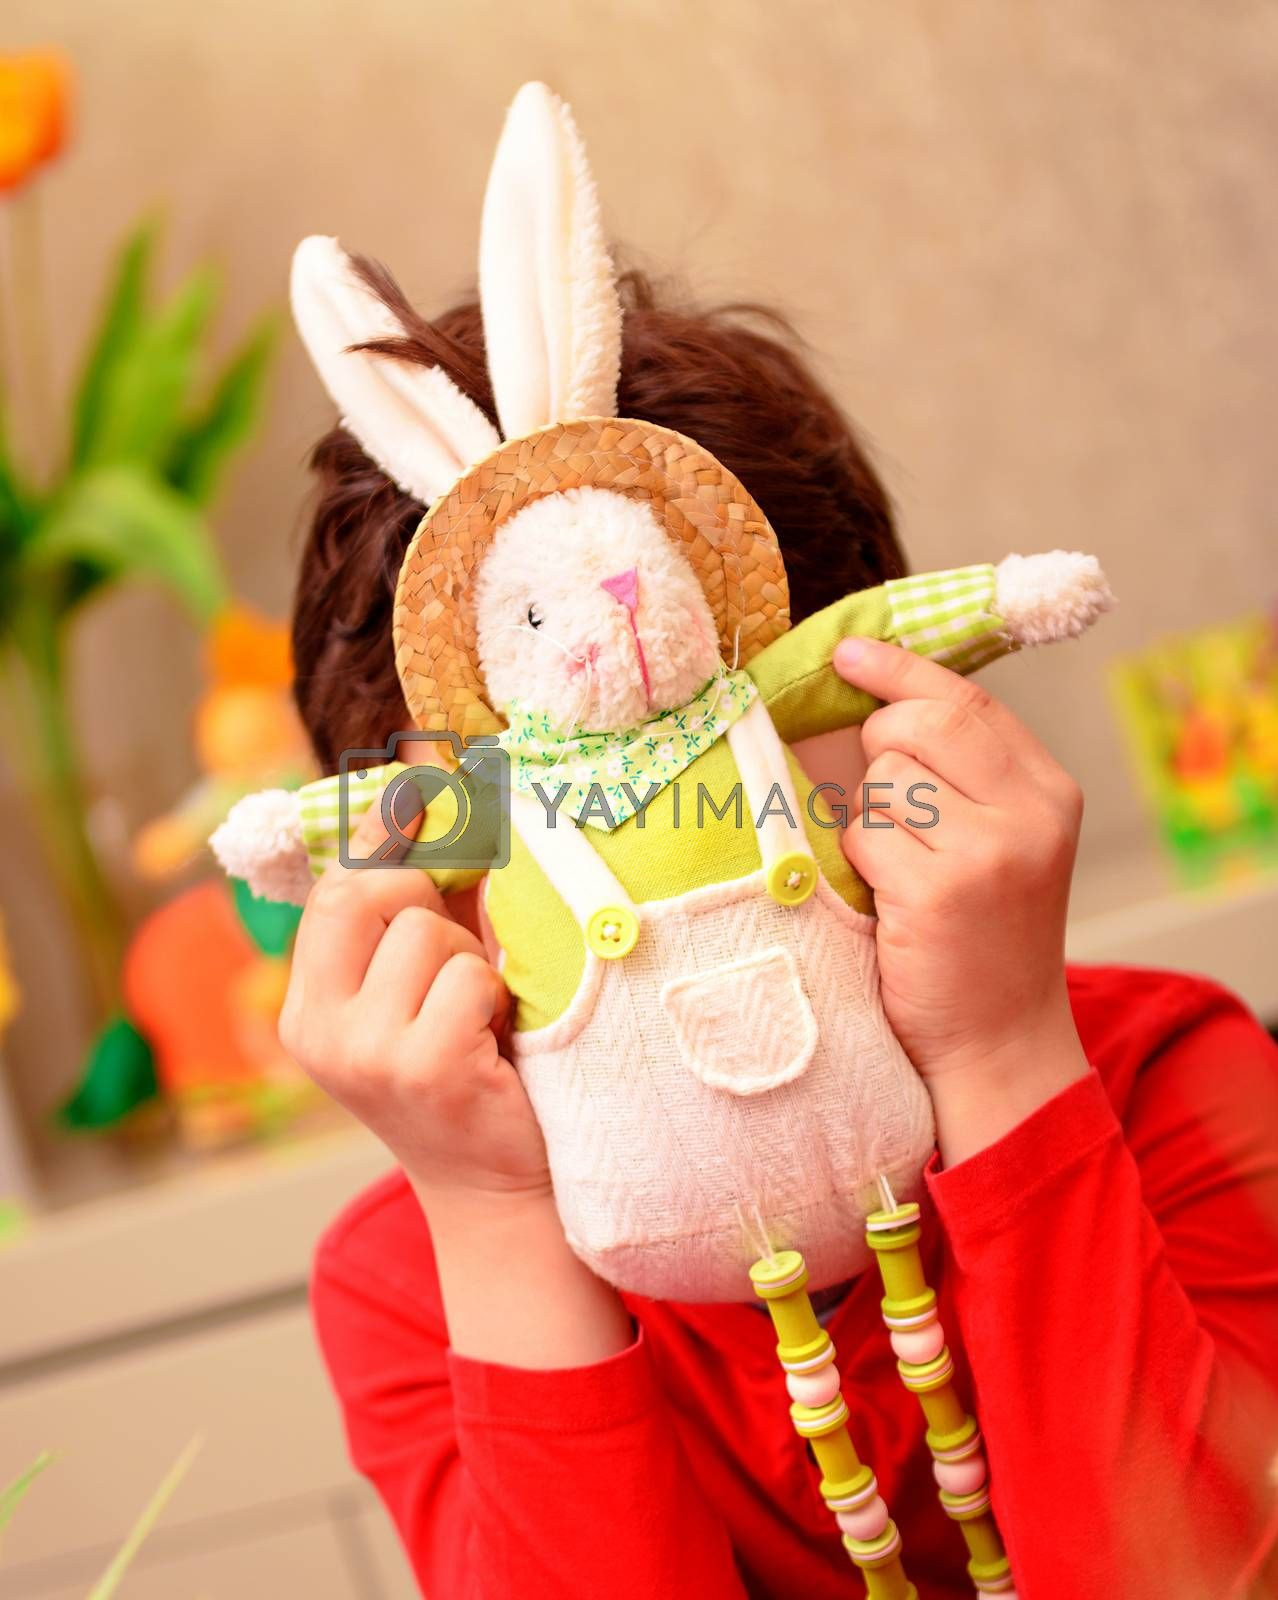 Joyful boy playing with soft bunny toy at home, traditional Easter symbol, happy preparation to religious spring holiday